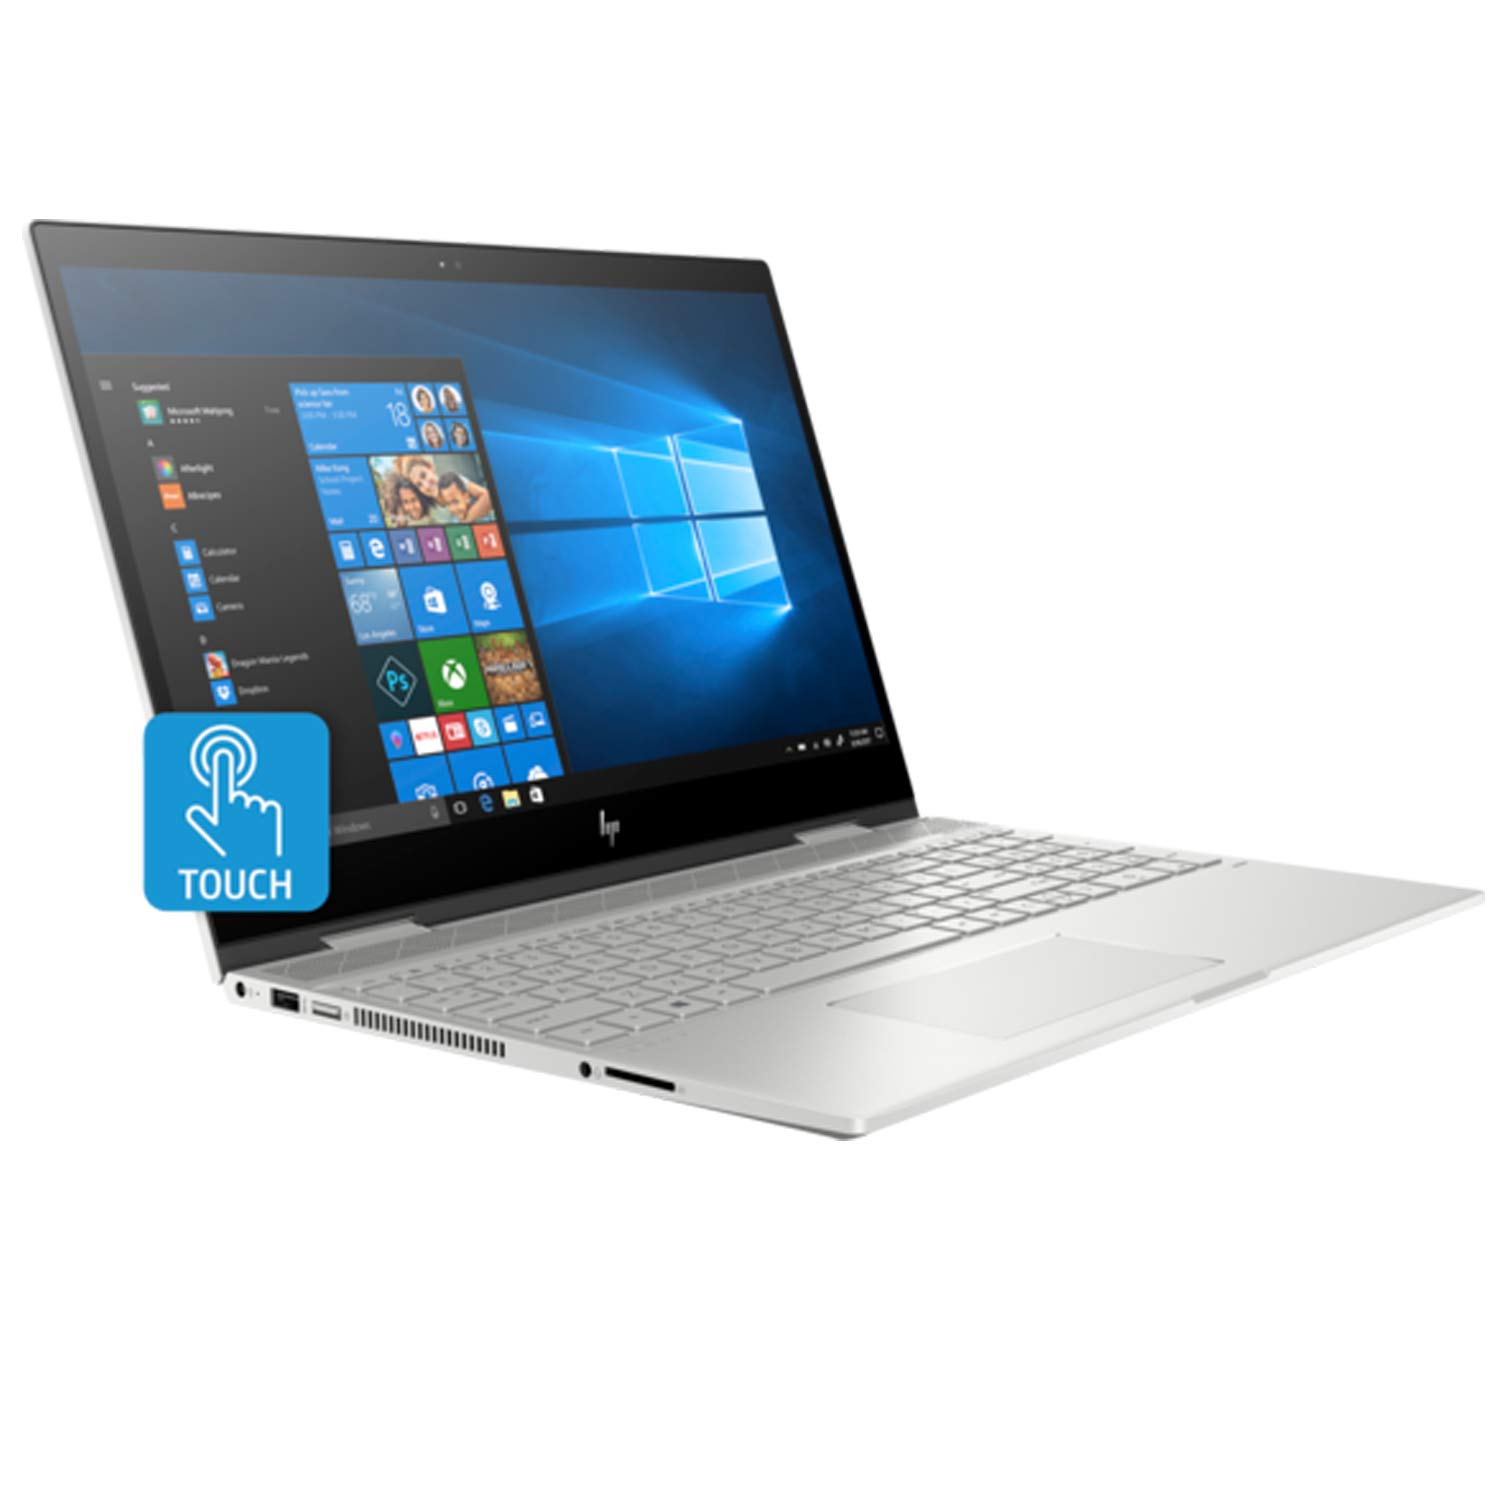 Amazon.com: HP Envy X360 15t Convertible 2-in-1 Premium Home Business Laptop (Intel 8th Gen i7-8550U Quad-Core, 16GB RAM, 1TB HDD + 16GB Intel Optane, ...